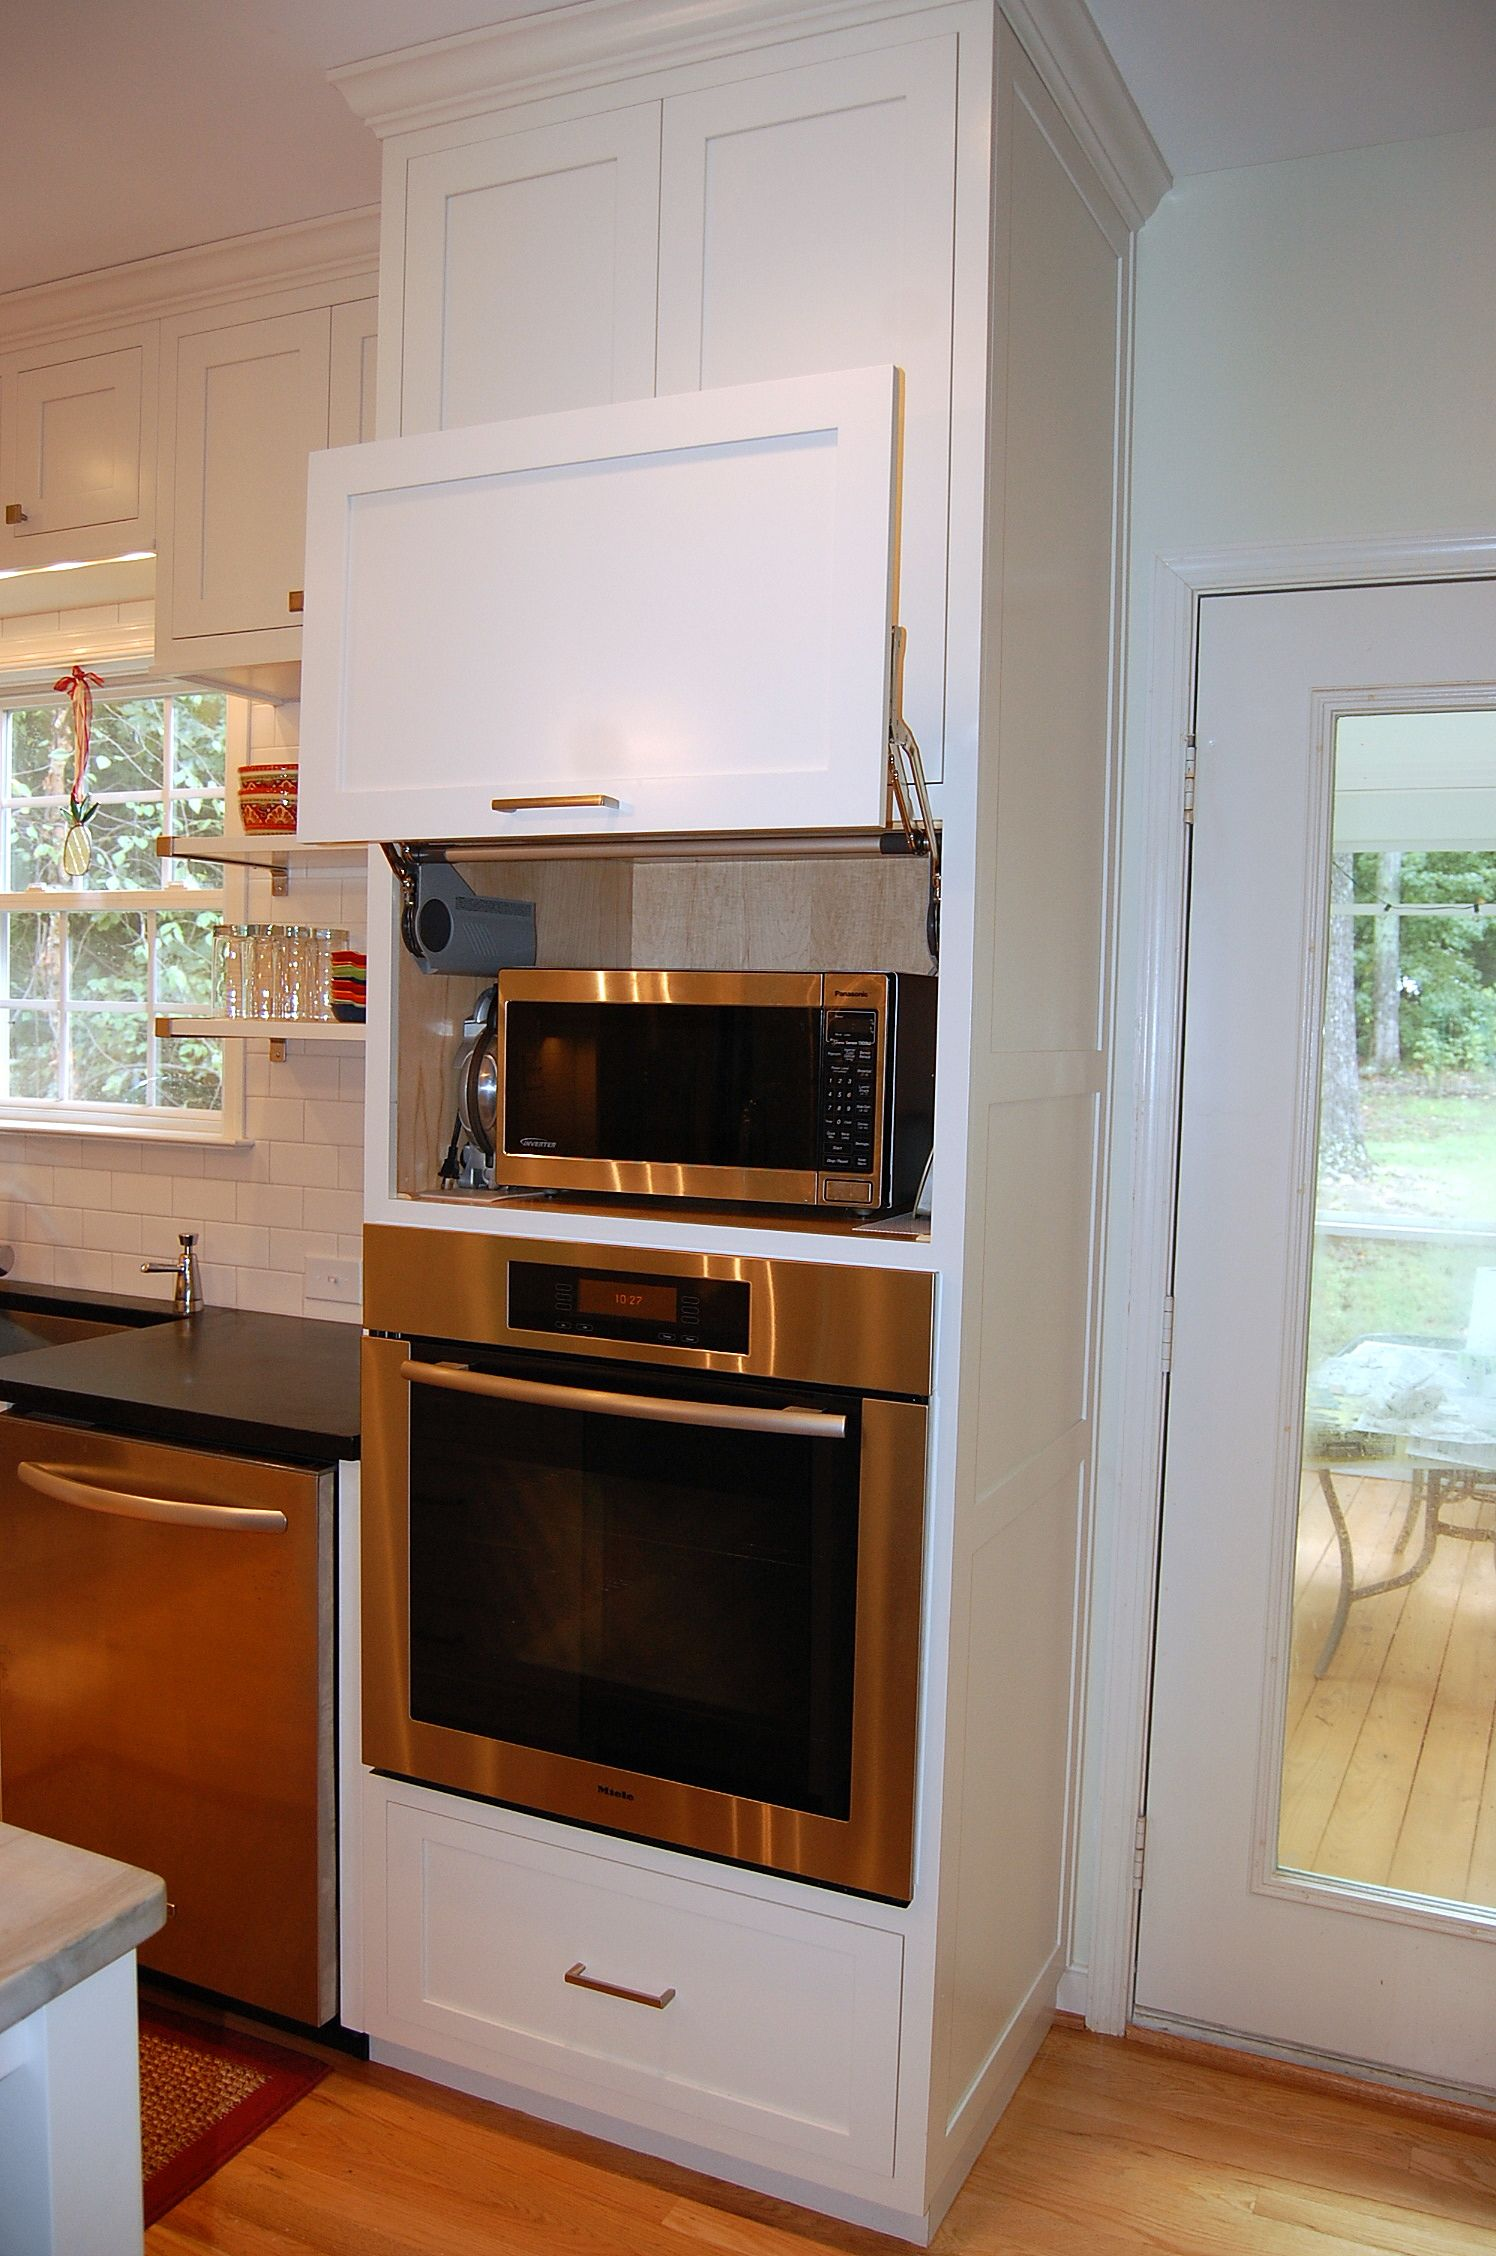 ... Hidden Microwave Above Wall Oven Unit Kitchen Design By For Kitchen  Ideas Microwave Placement ...